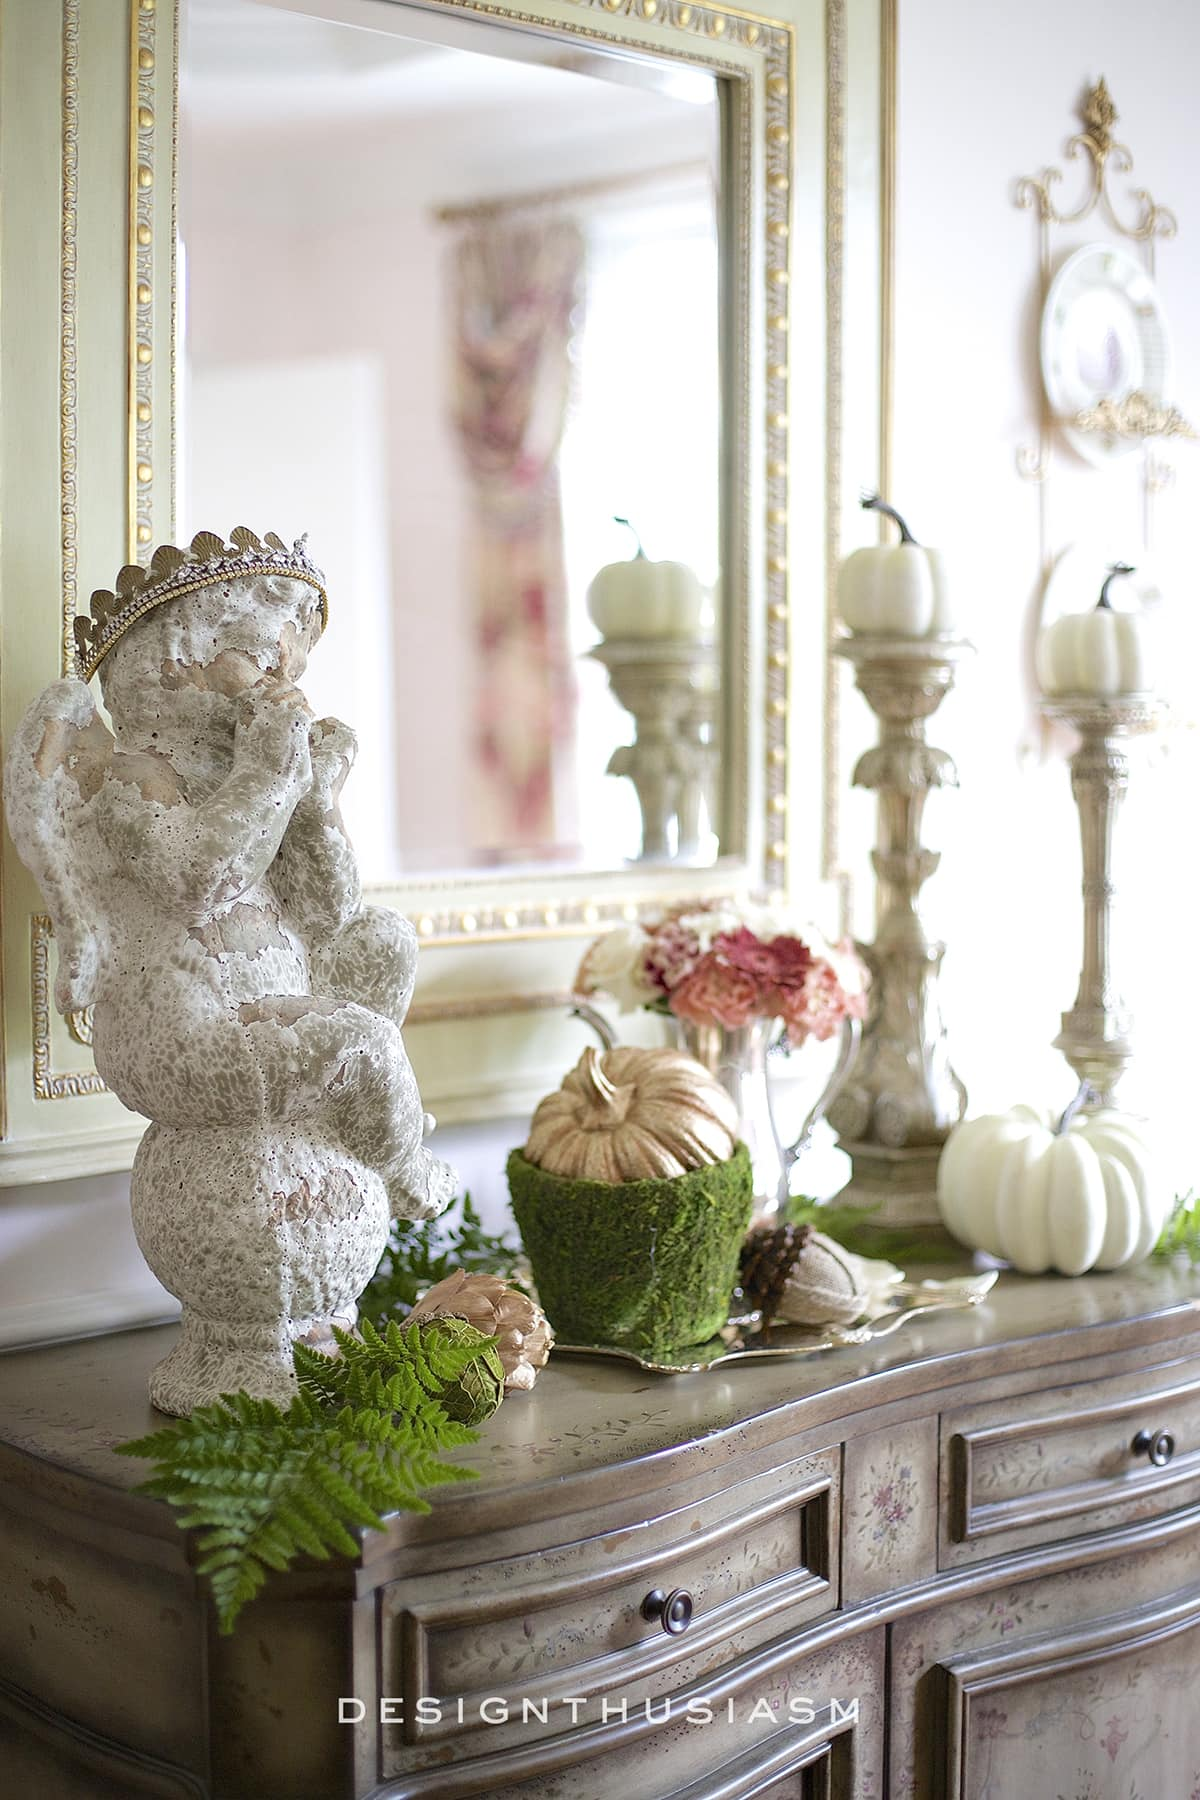 Fall Vignette in the Dining Room | Designthusiasm